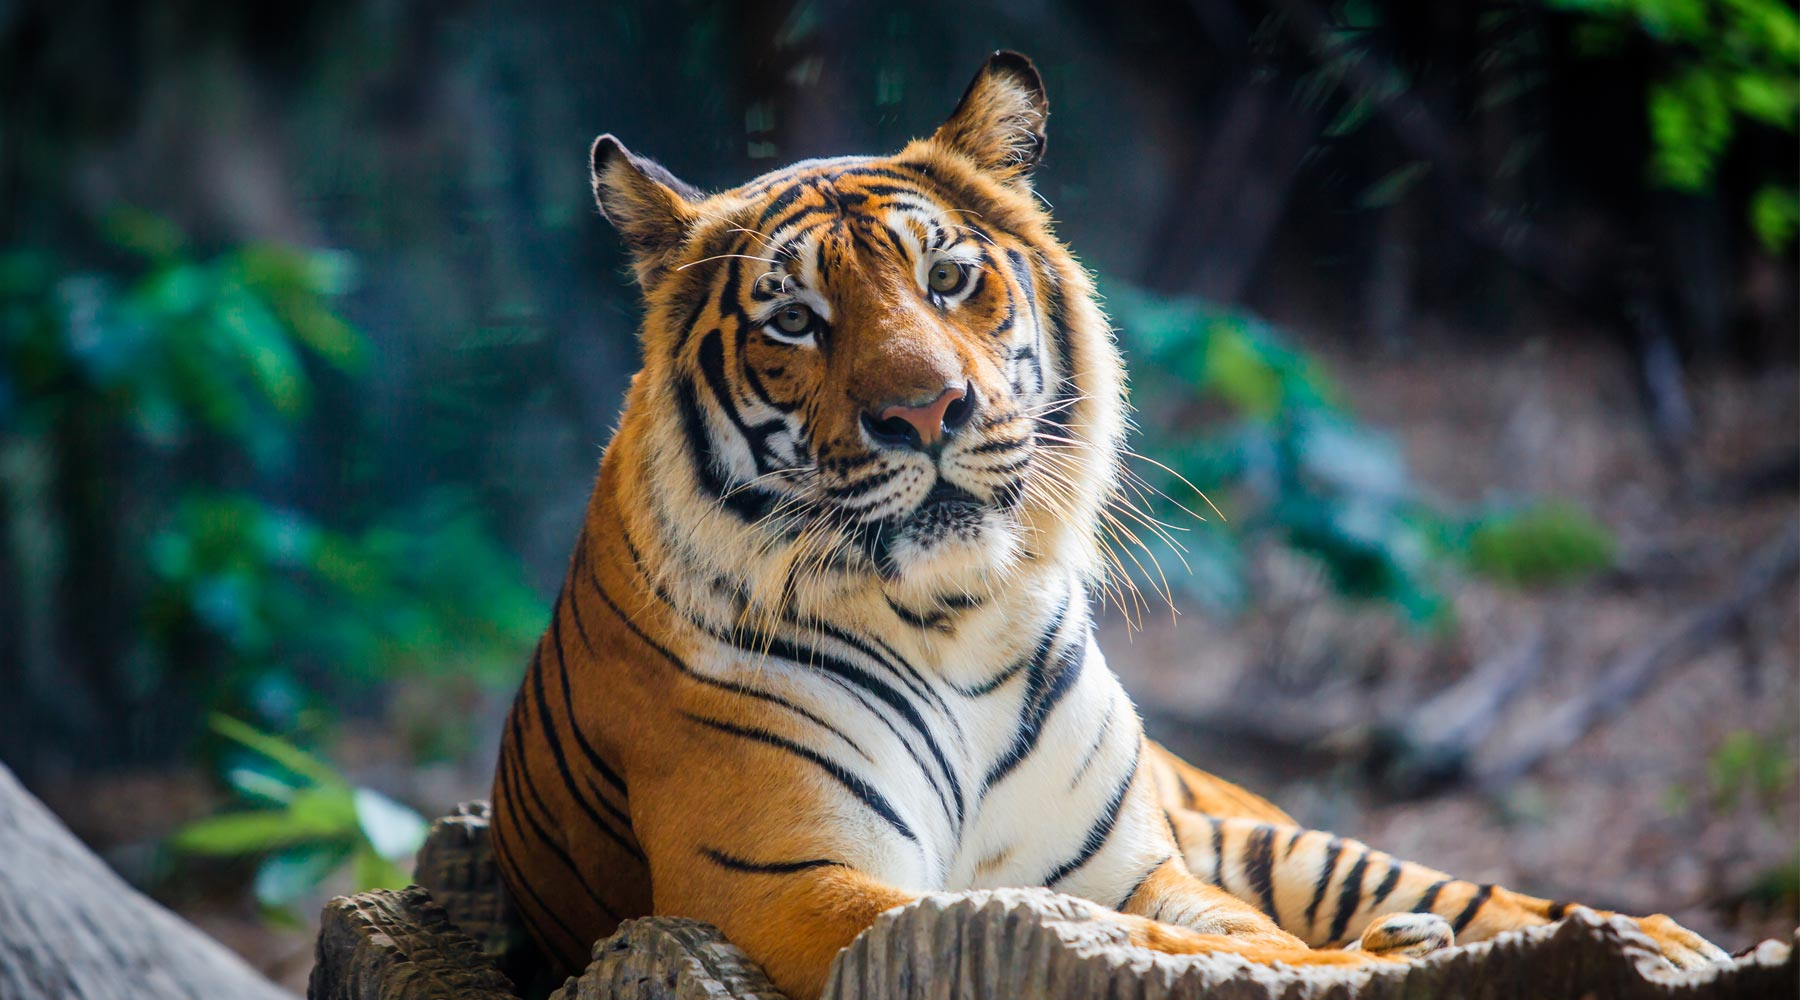 Tiger Kingdom Phuket – A Beautiful Zoo Just For Tigers